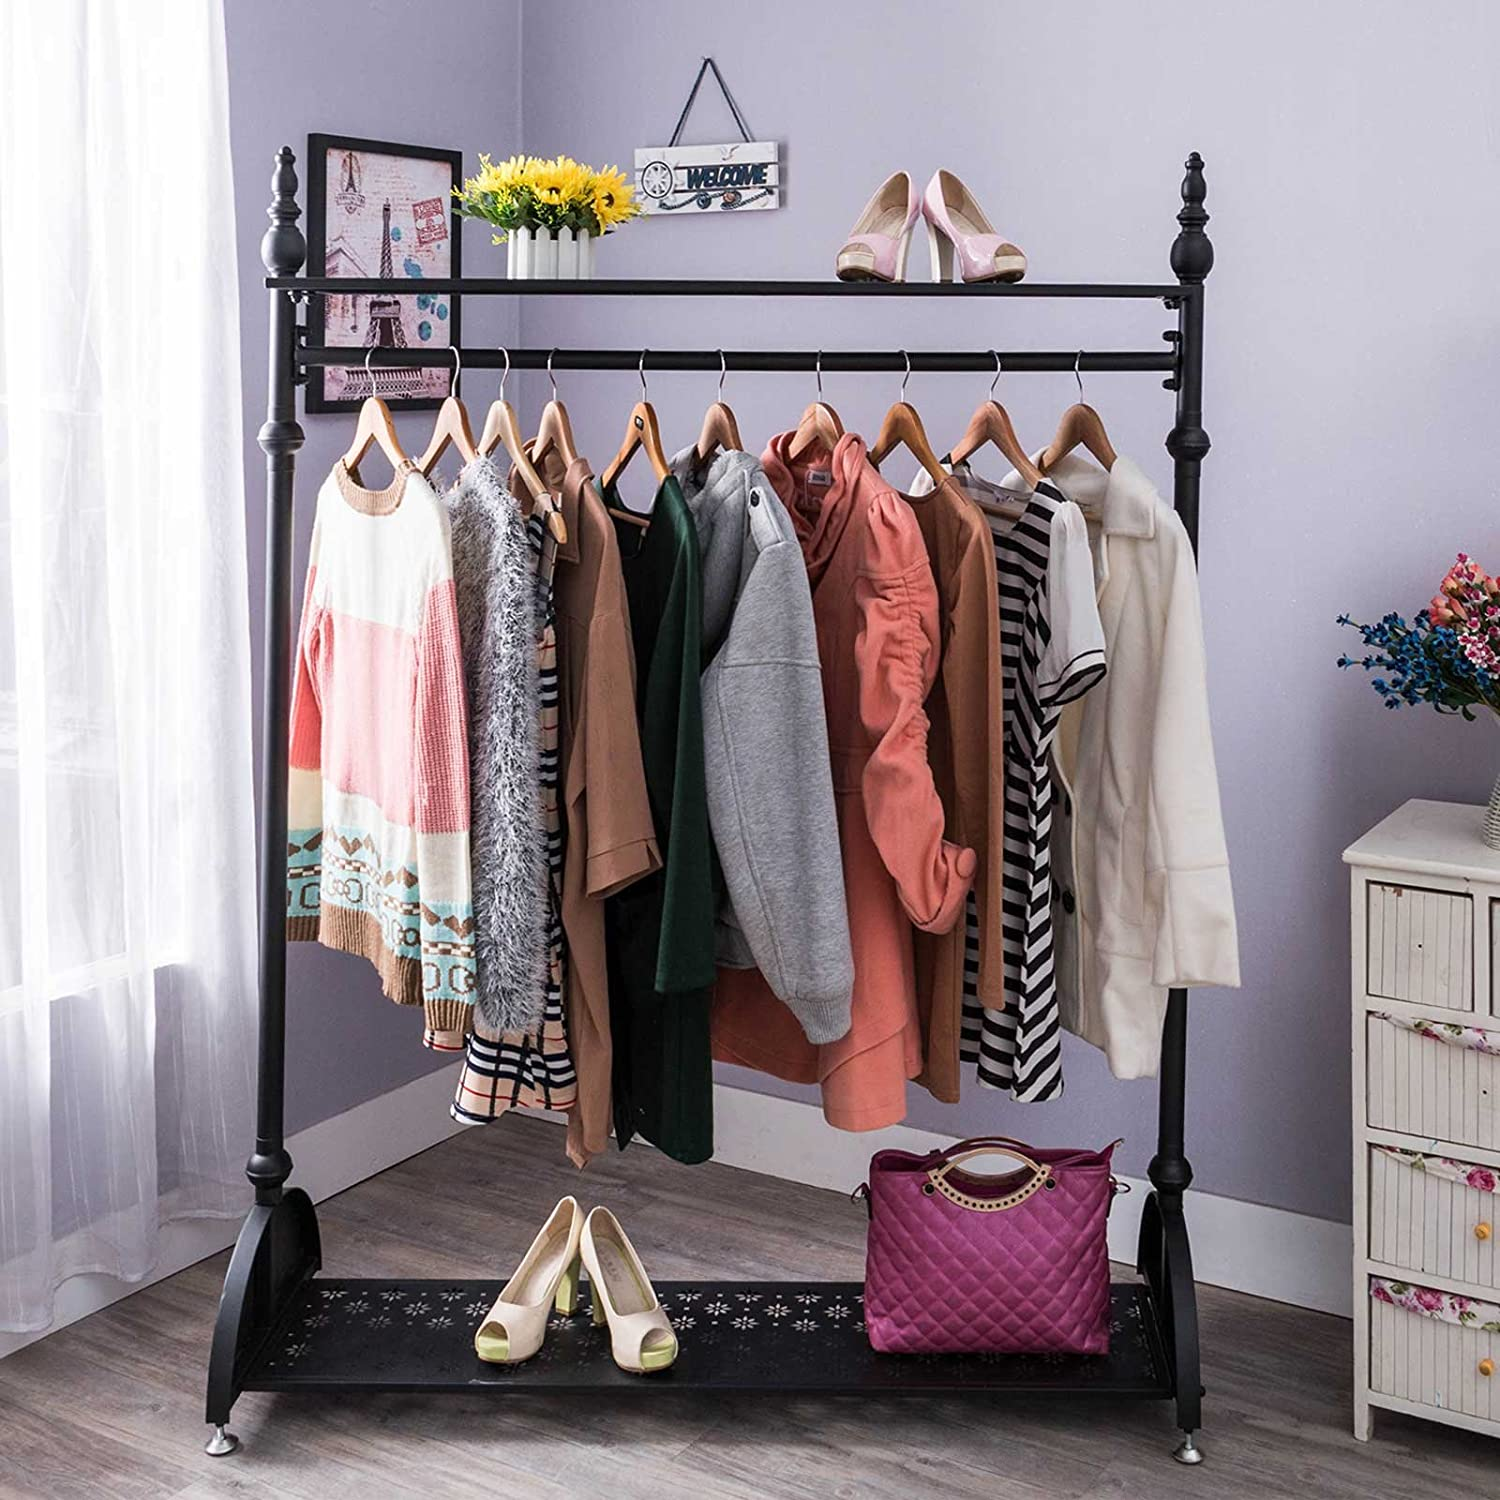 four compact seen ikea rack offering corner stained in most portable model system closet white clothes shoes frames easy storage for organizing shelves racks wooden and with fascinating featured fabulous pax hanging furniture home ideas also wardrobe design featuring bags open shelf